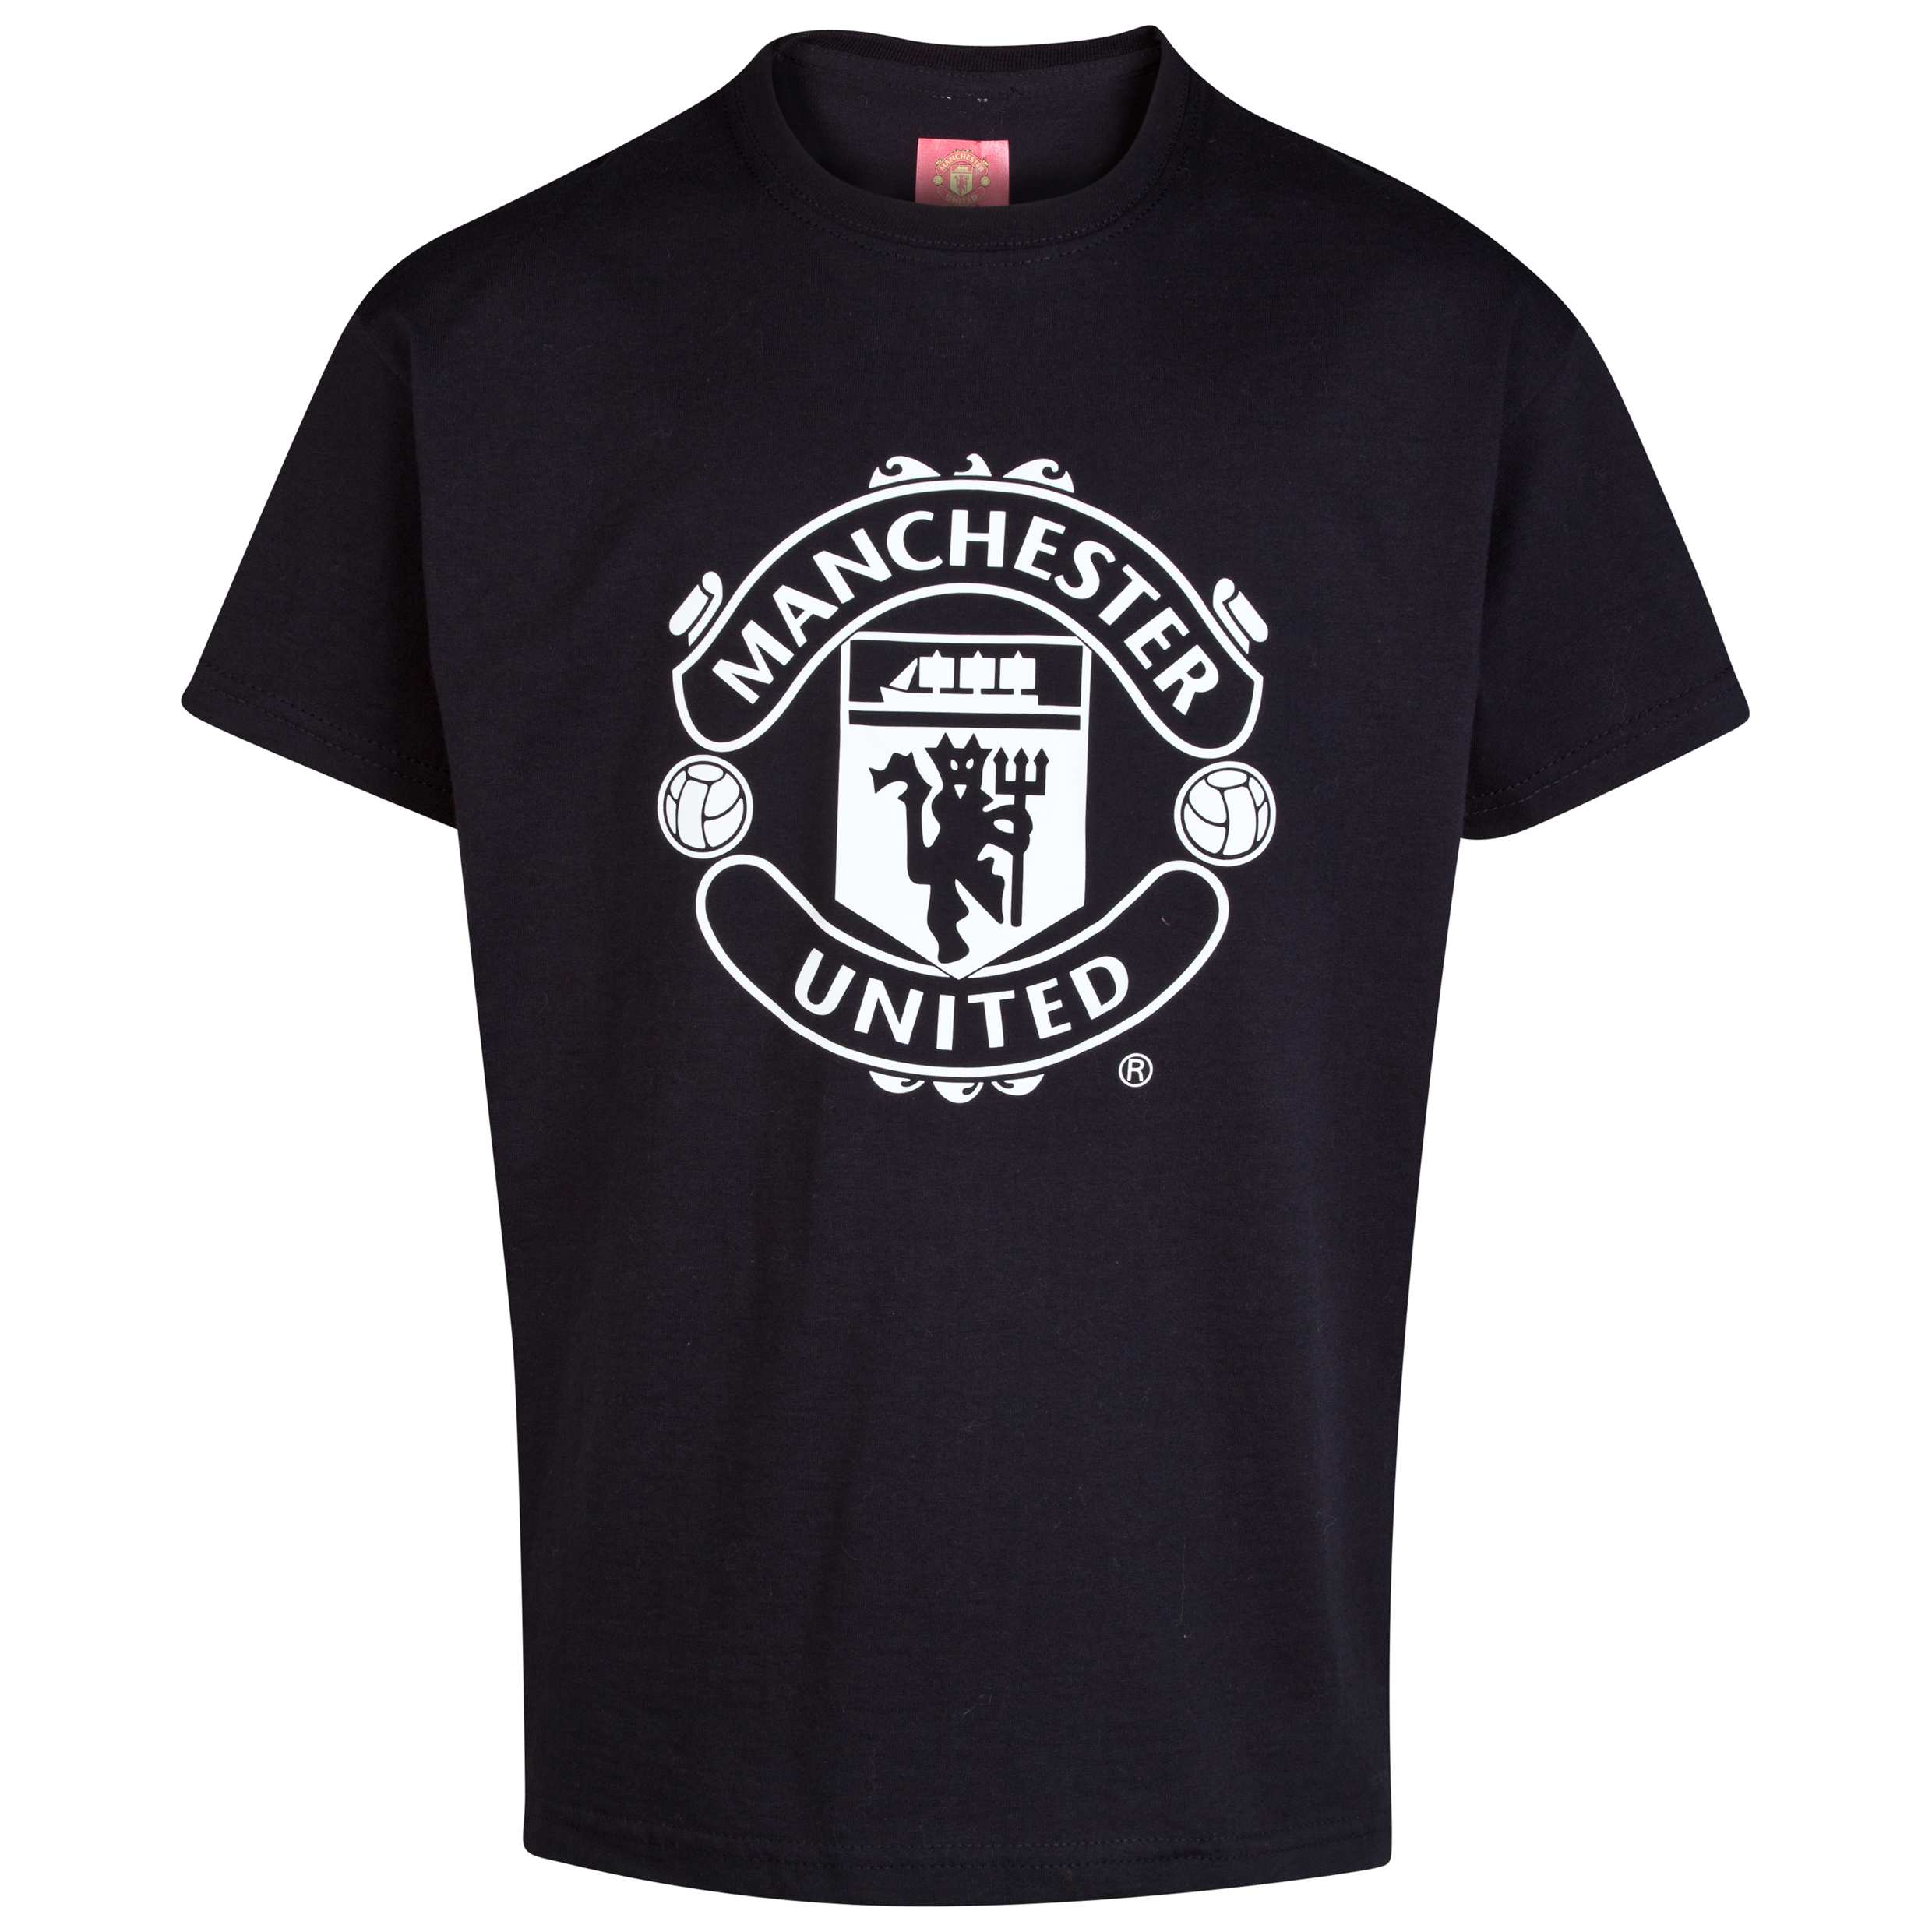 Manchester United Glow In The Dark Crest T-Shirt - Older Boys Black